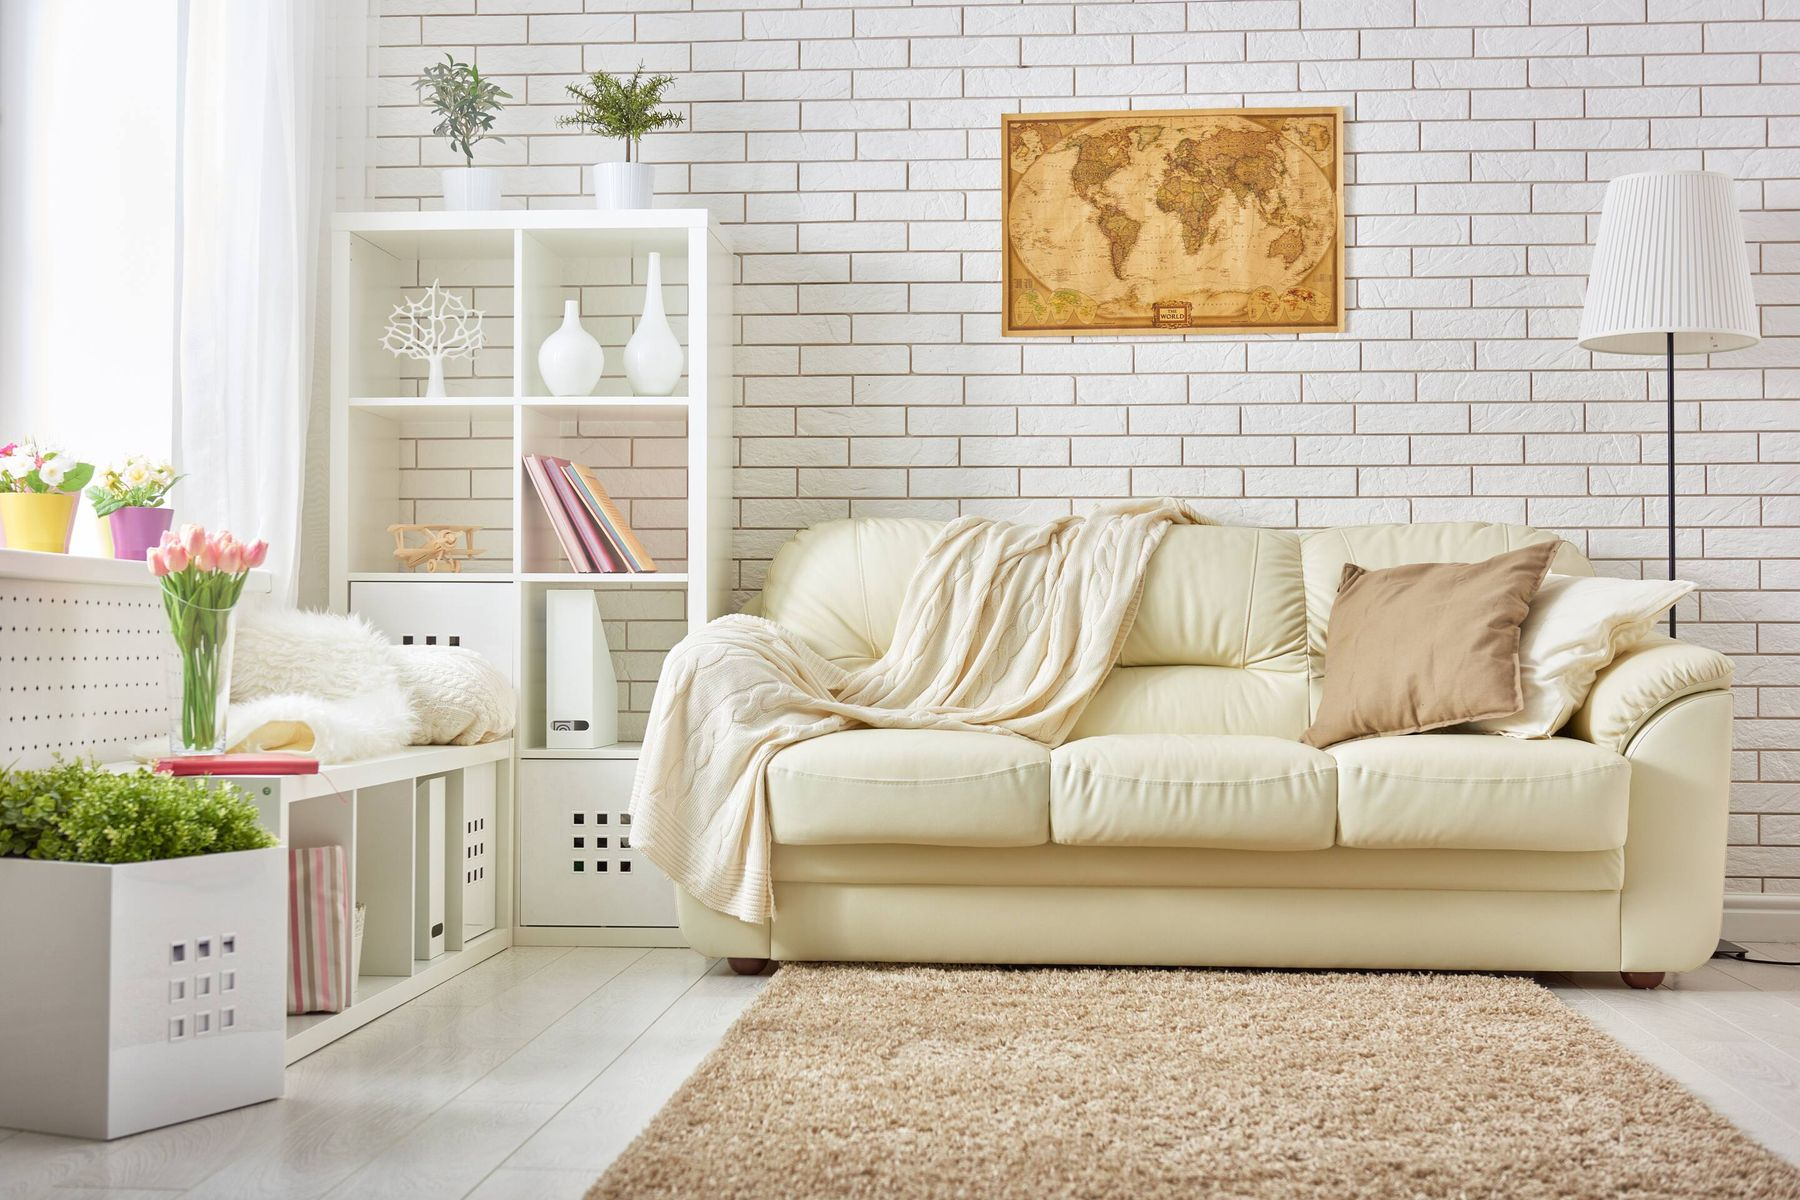 How to Remove Wine Stains from White Sofa | Cleanipedia